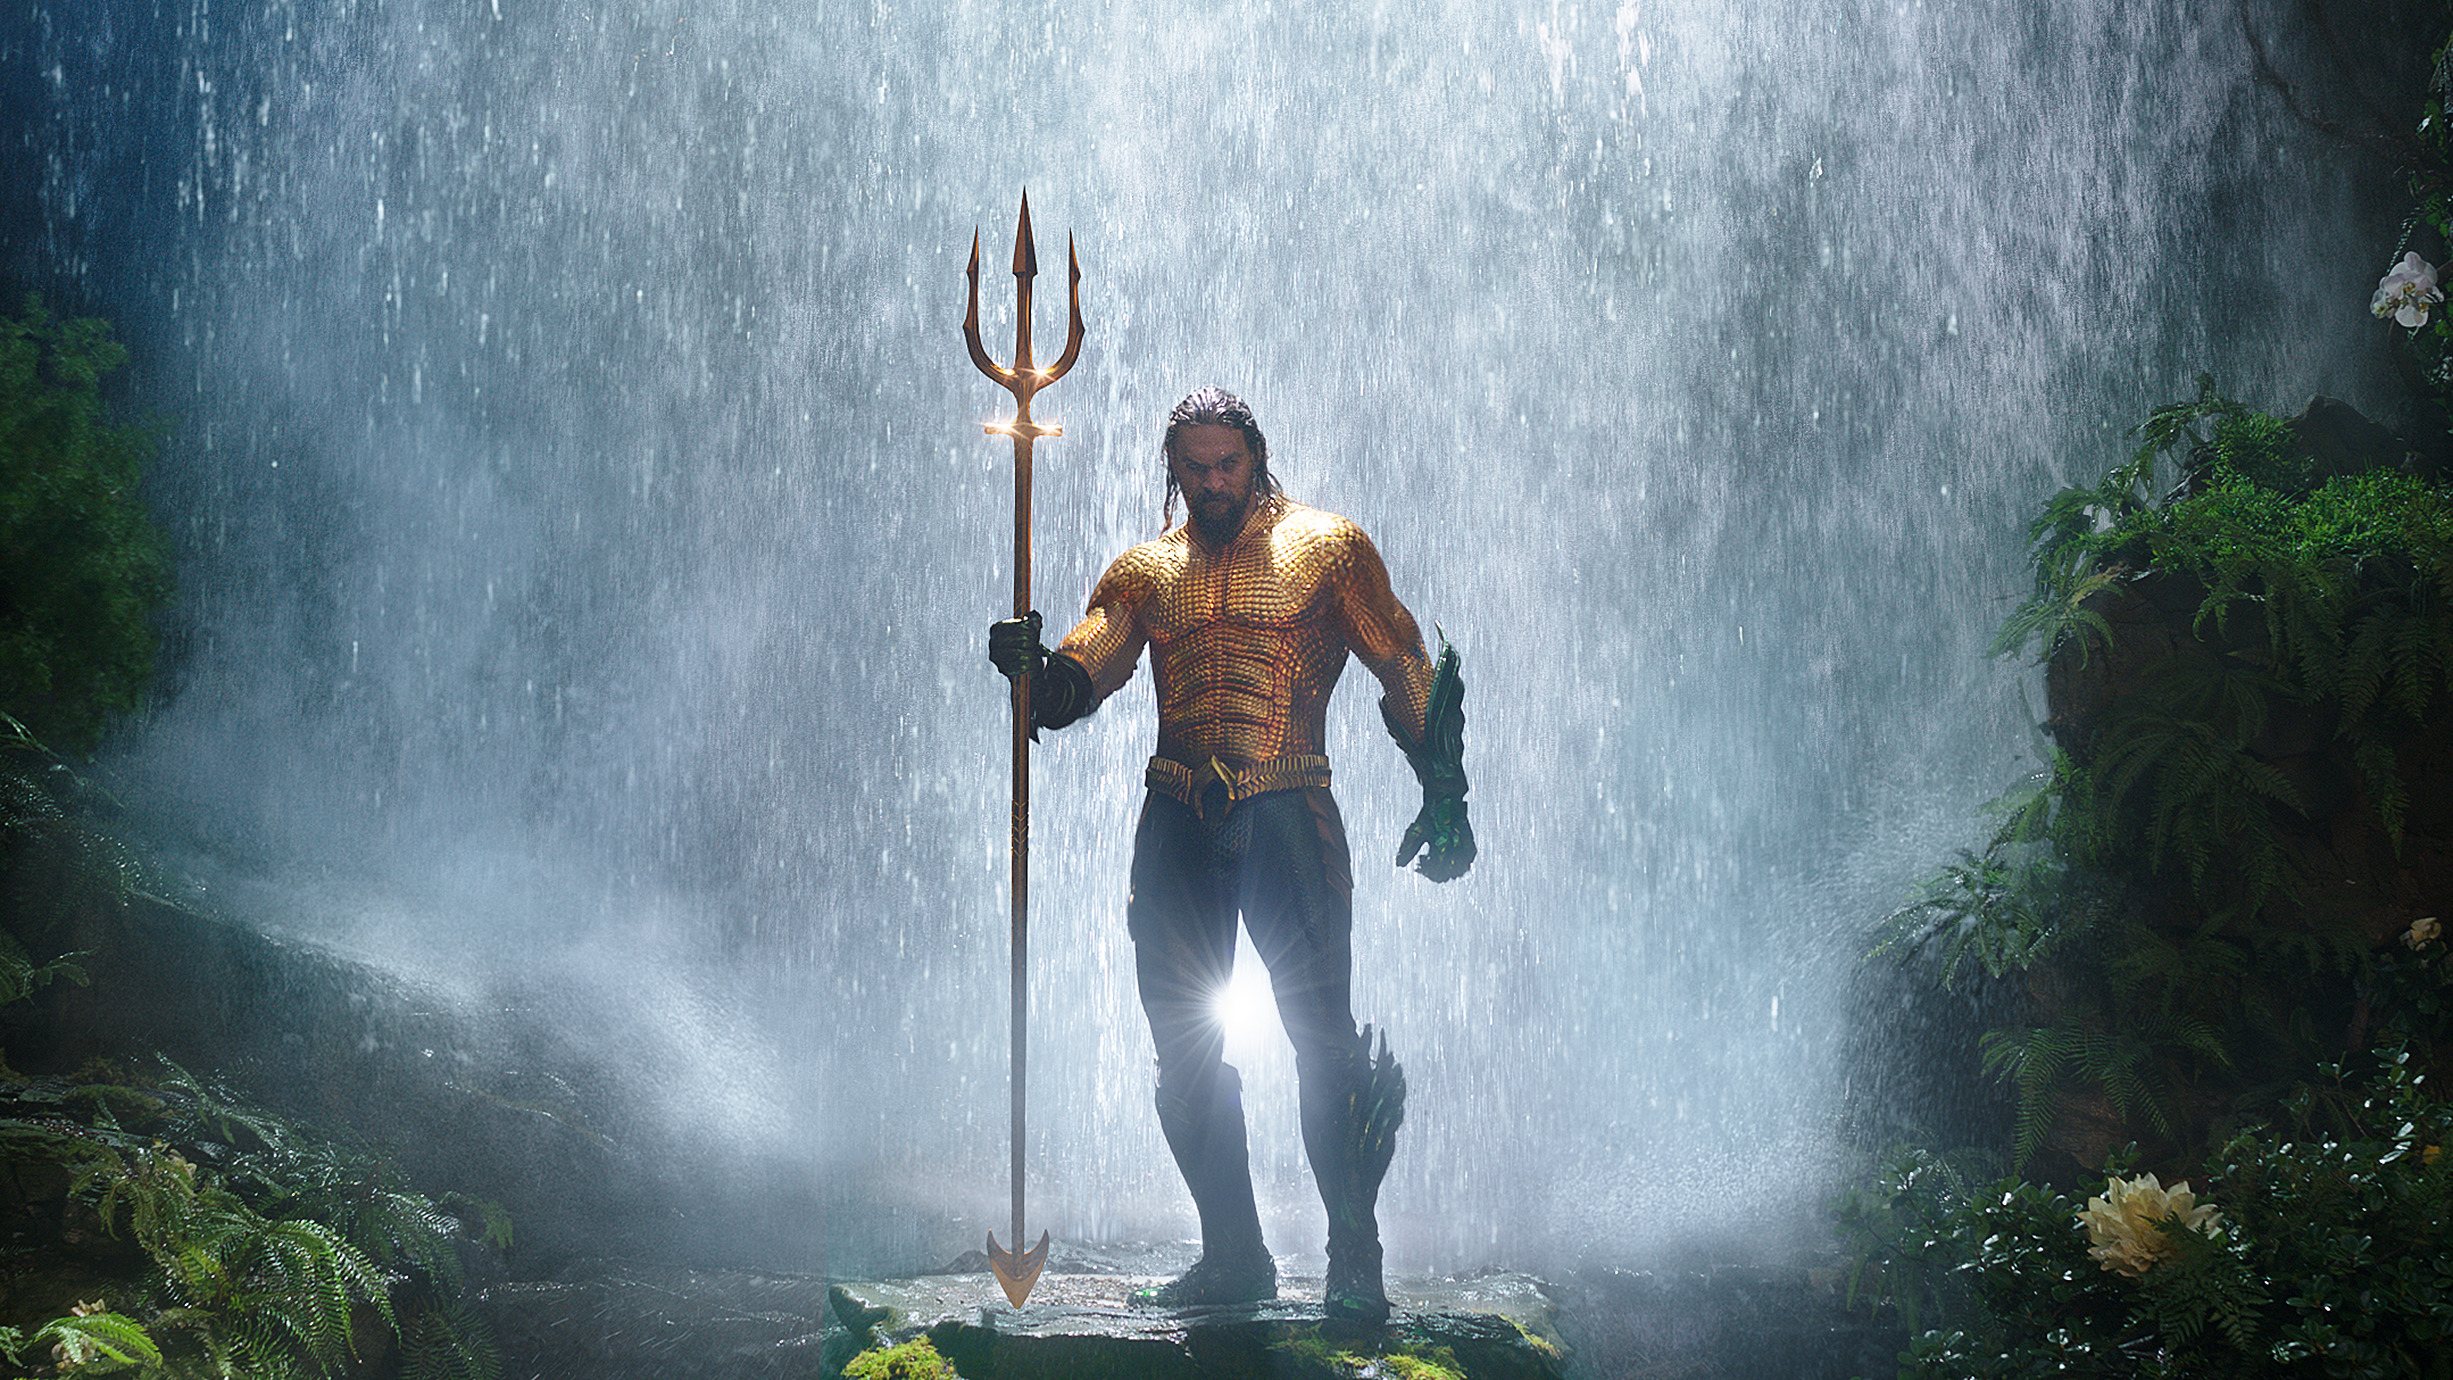 Aquaman - In theaters Friday, December 21st.